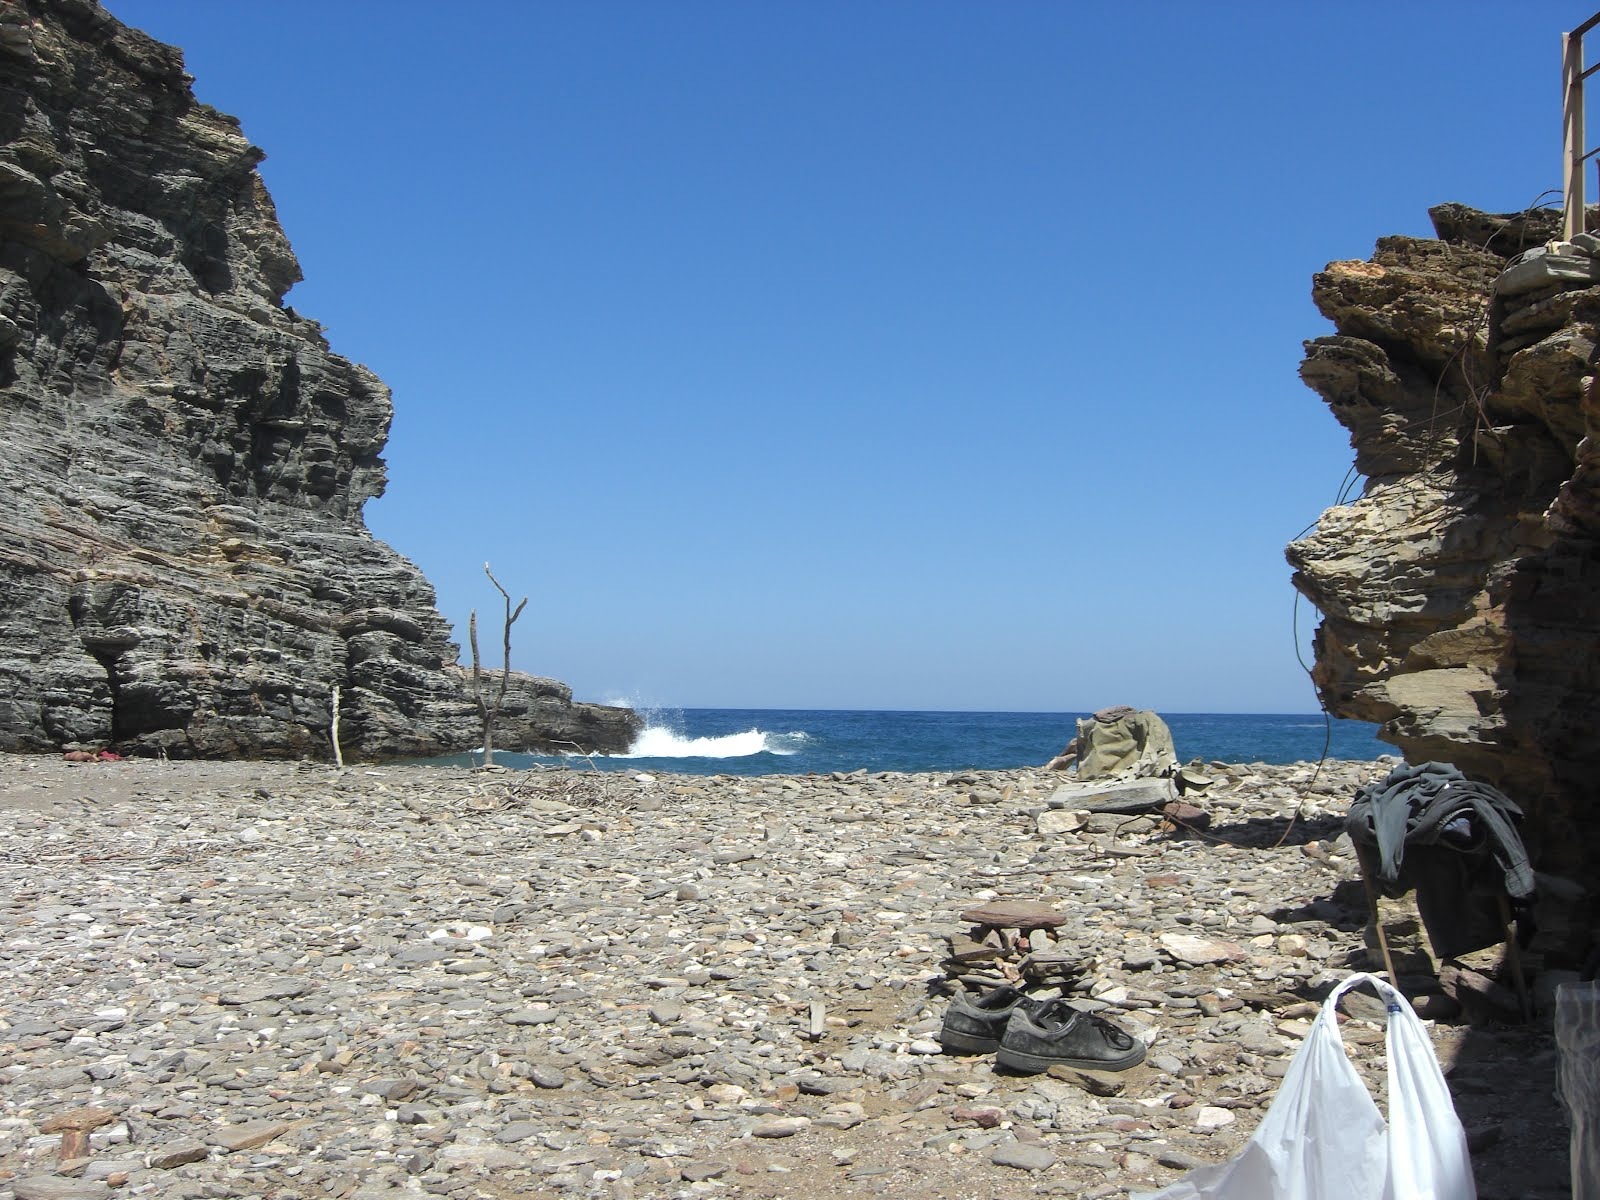 My first photos in Ikaria. Then others followed.